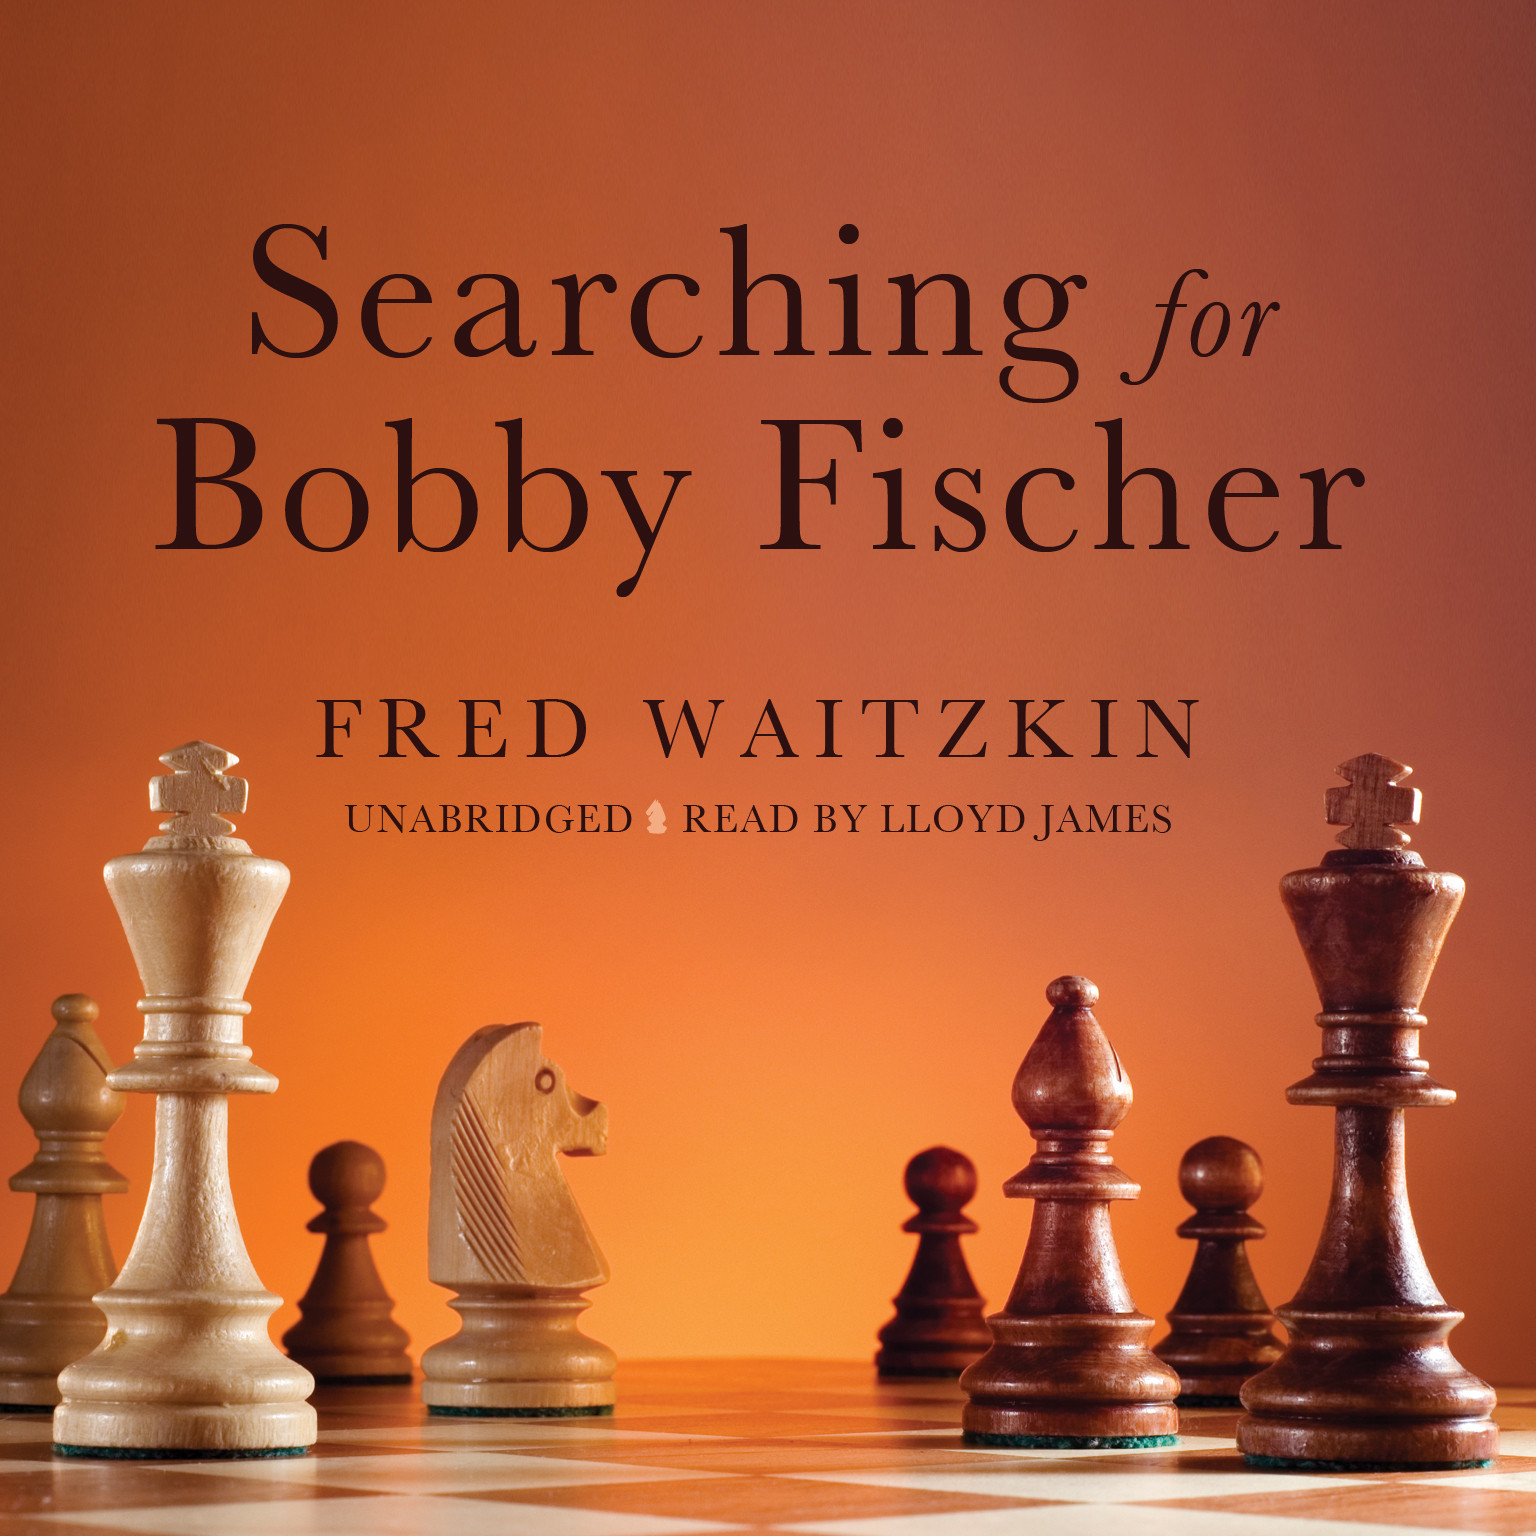 Printable Searching for Bobby Fischer: The Father of a Prodigy Observes the World of Chess Audiobook Cover Art